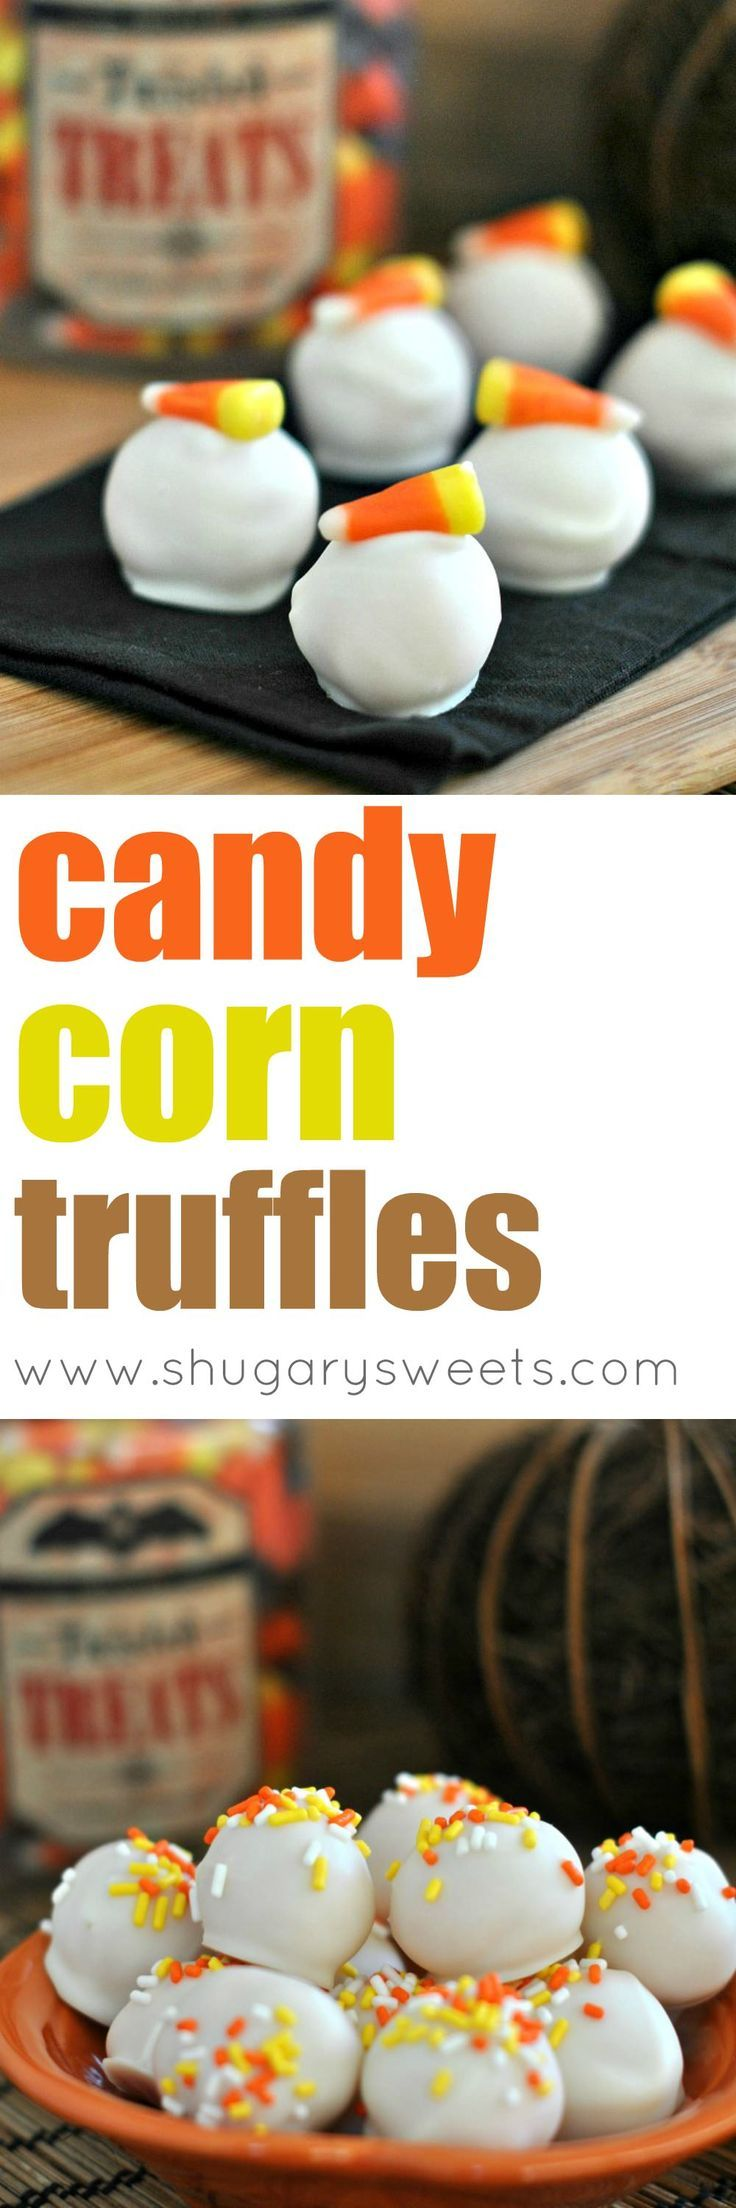 Easy Oreo truffles! Uses Candy Corn Oreos with Cream Cheese, dipped in white chocolate coating! Perfect for Halloween parties!